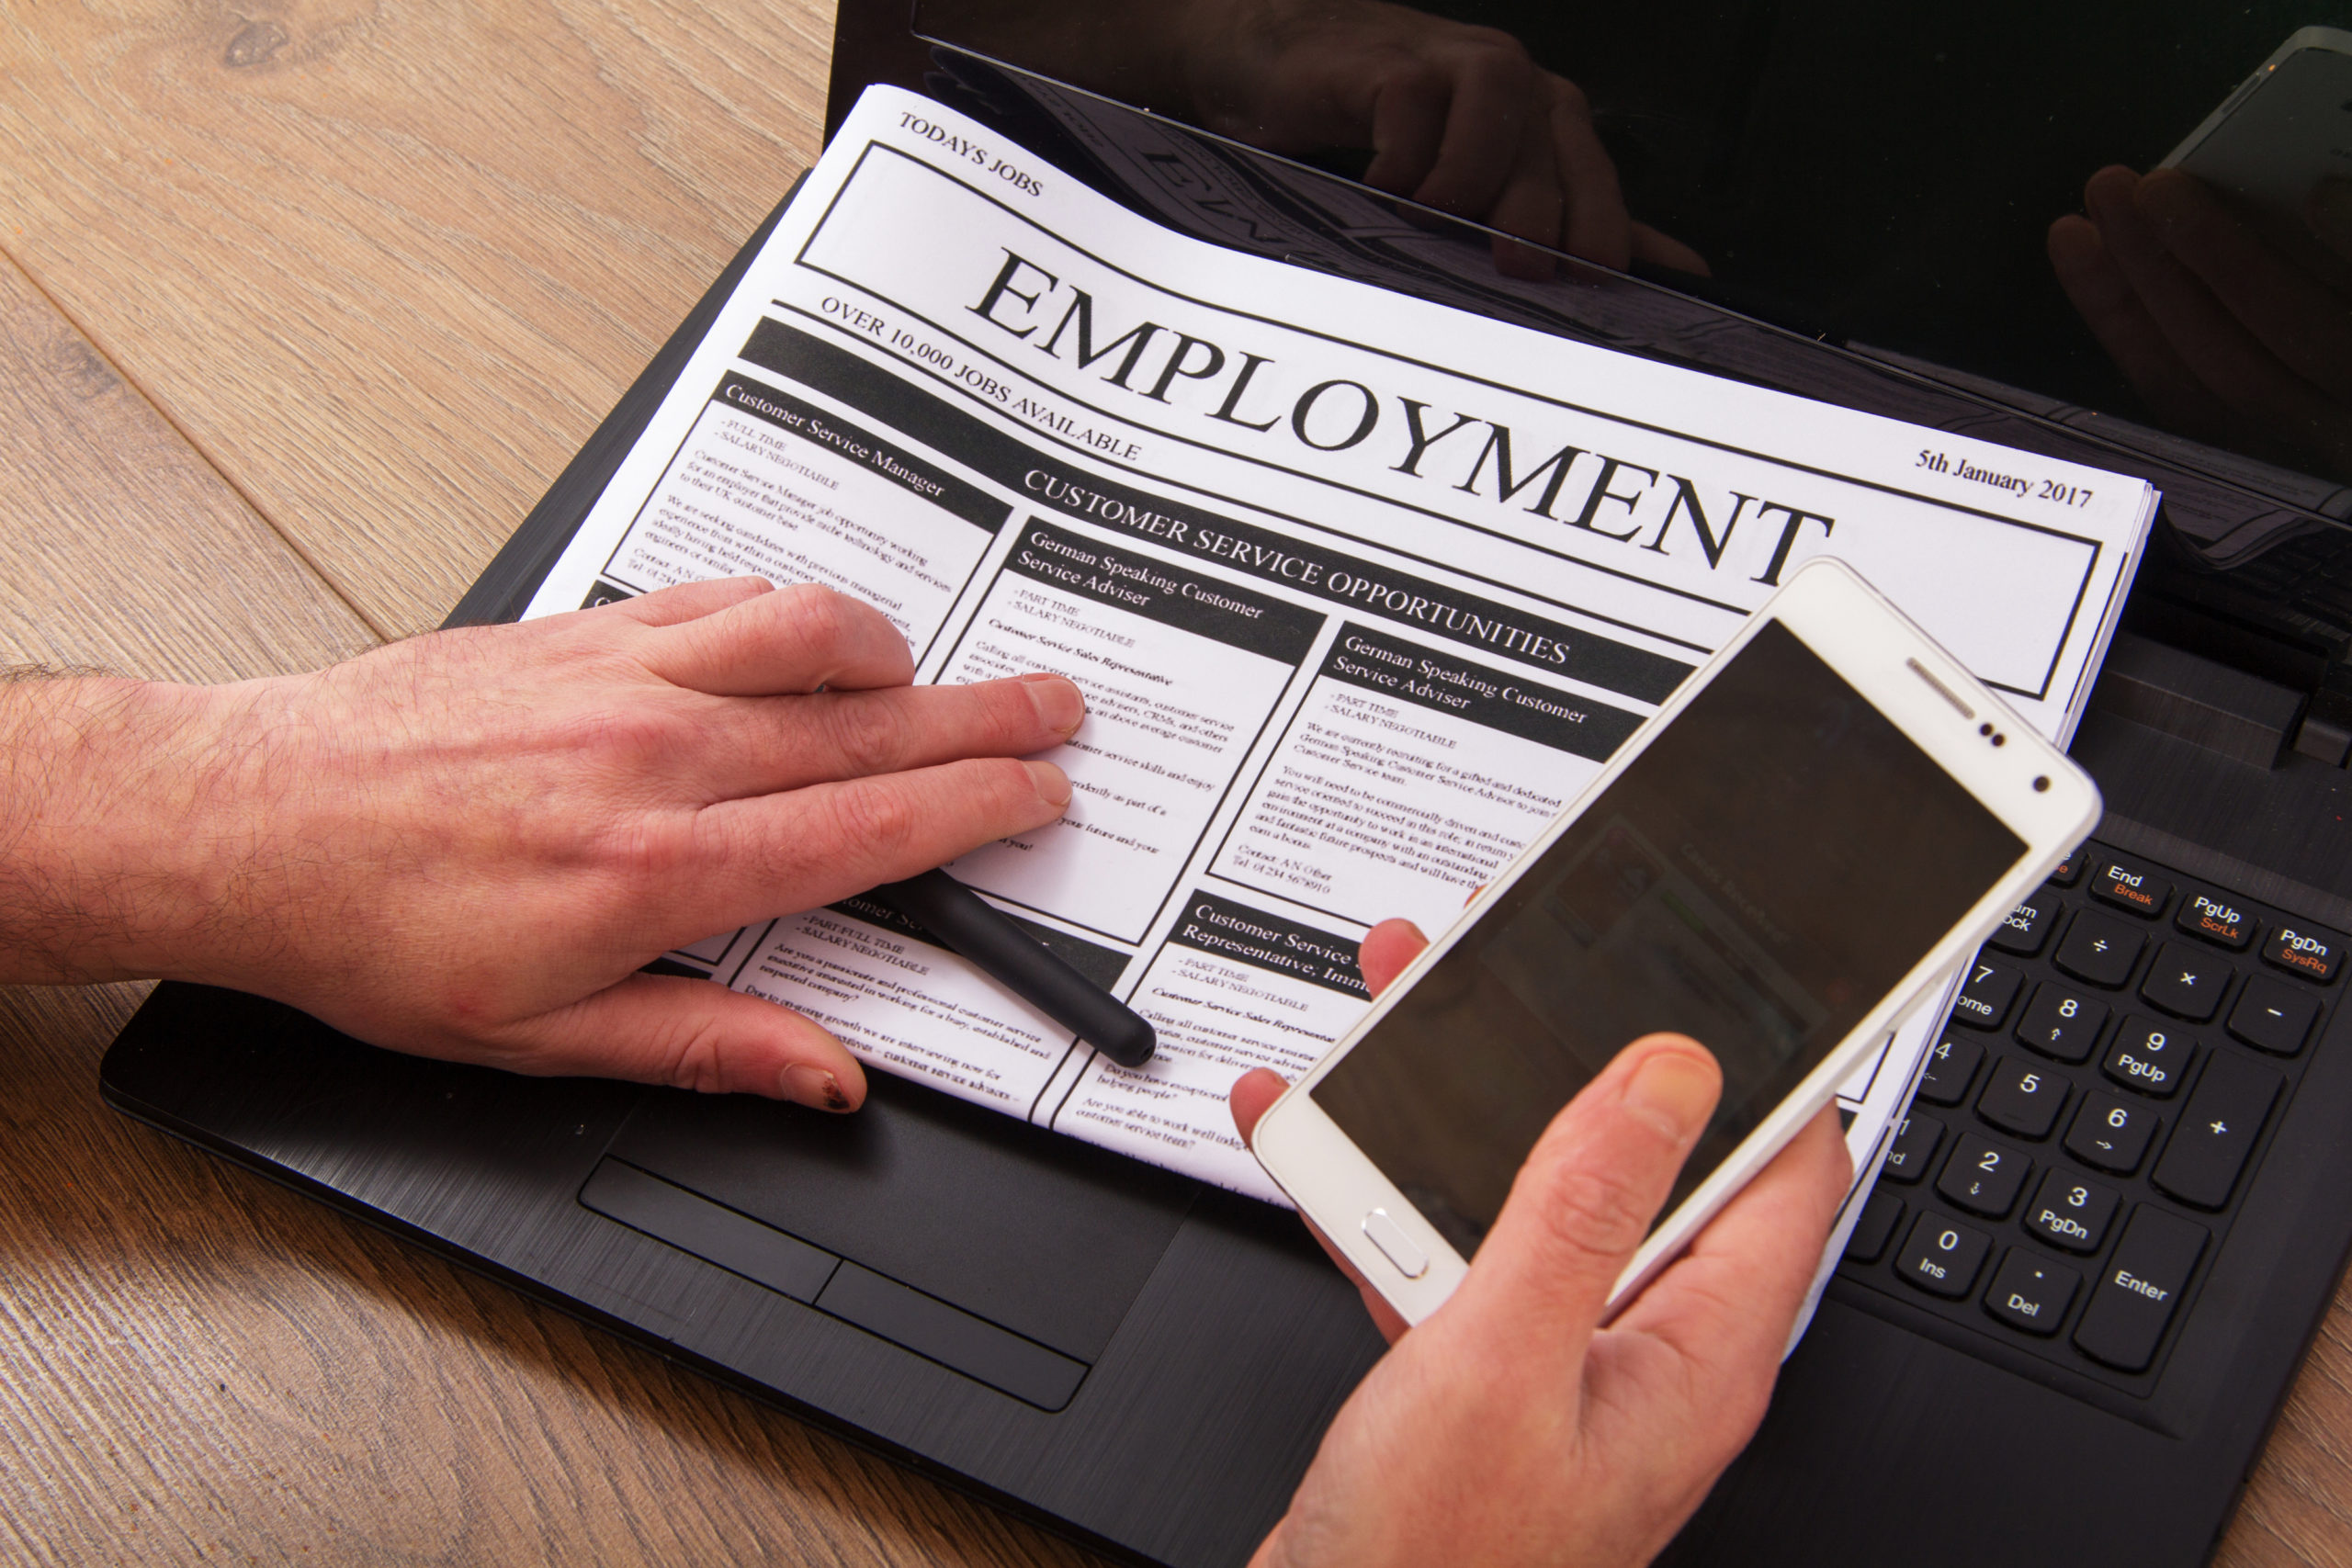 Checklist: what should be in a job advert?